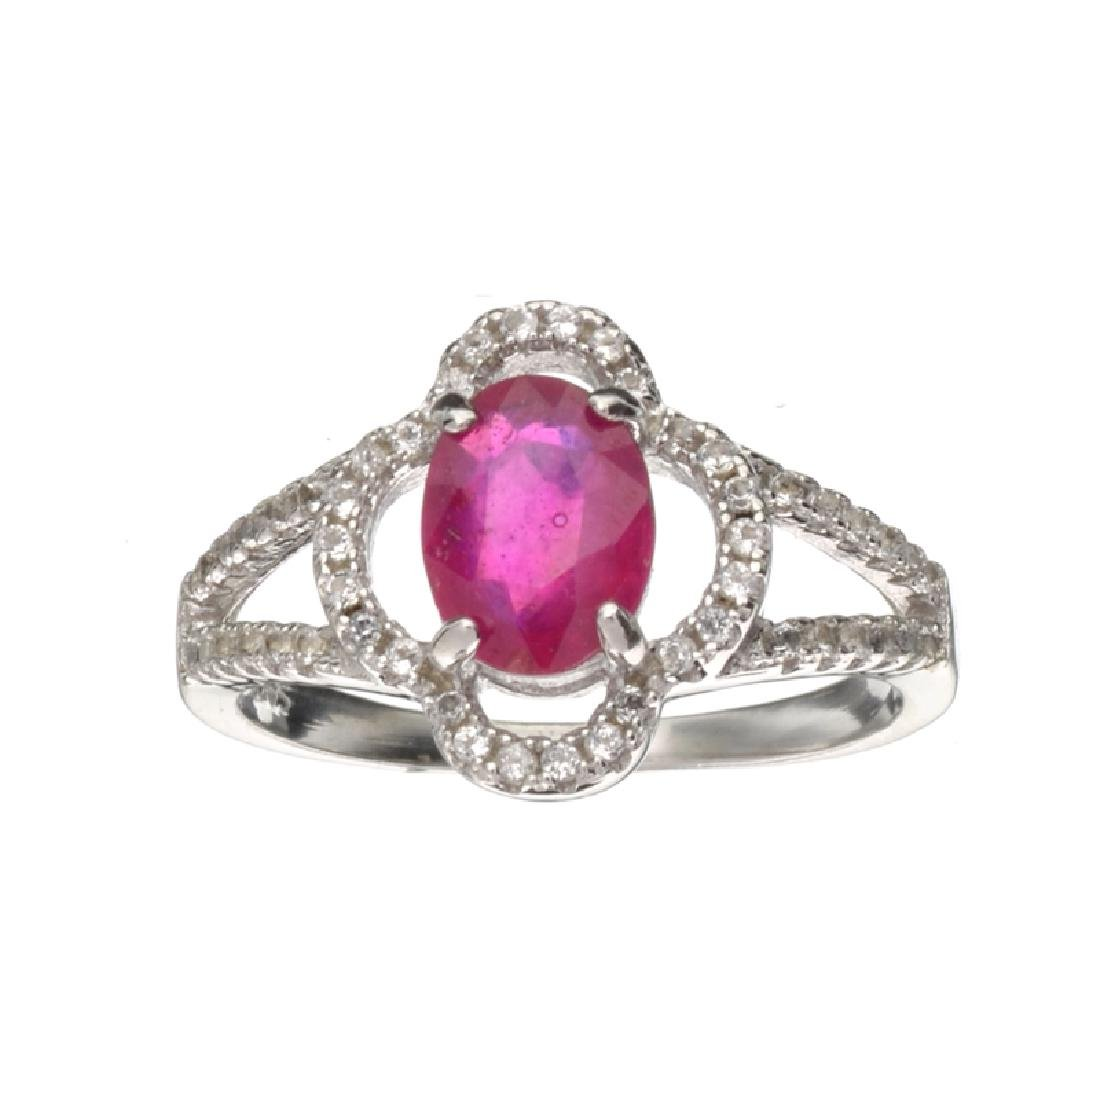 APP: 0.7k Fine Jewelry 0.88CT Ruby And Colorless Topaz